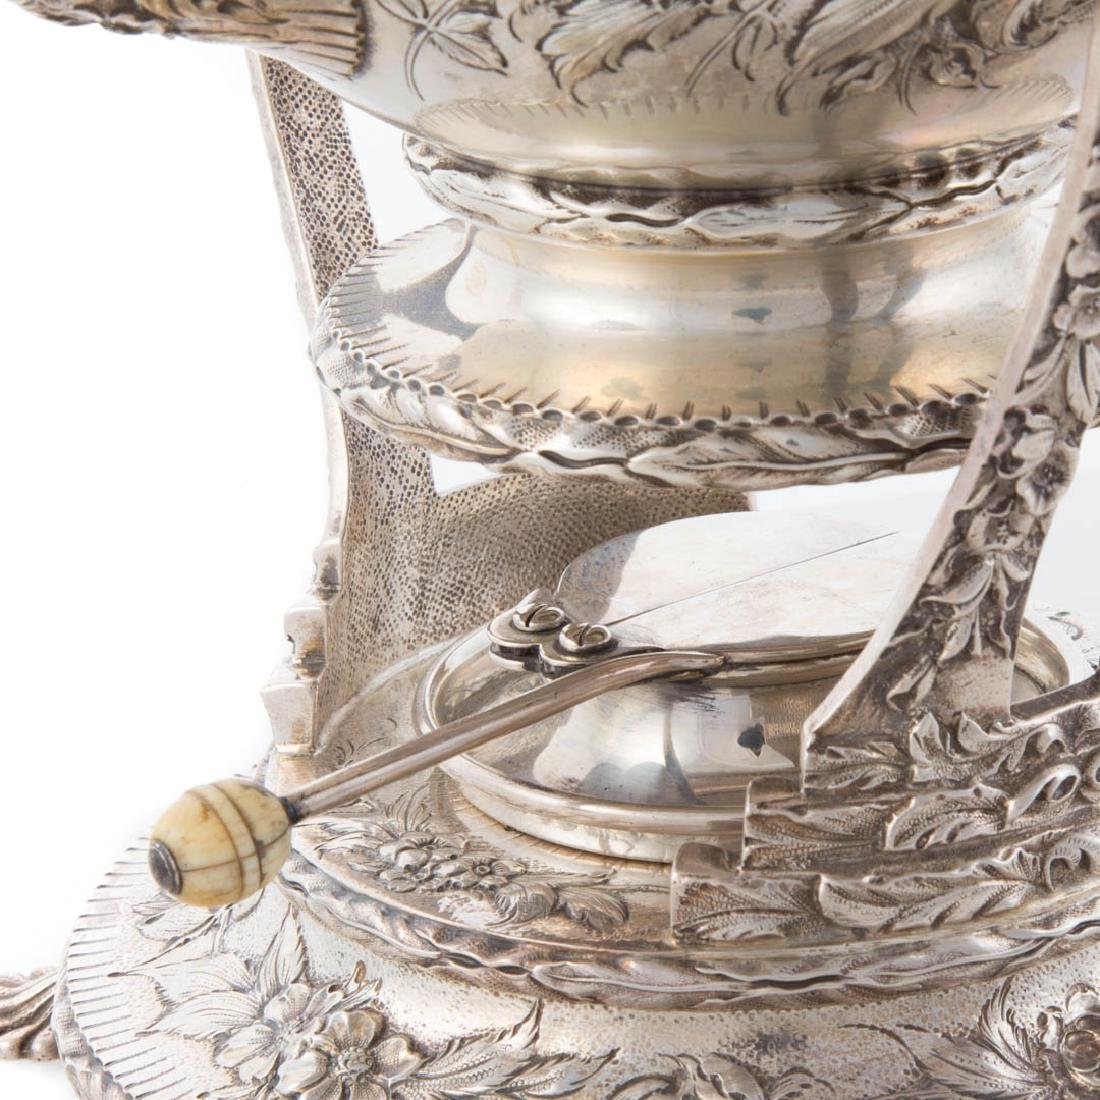 Kirk repousse sterling silver tea service - 7